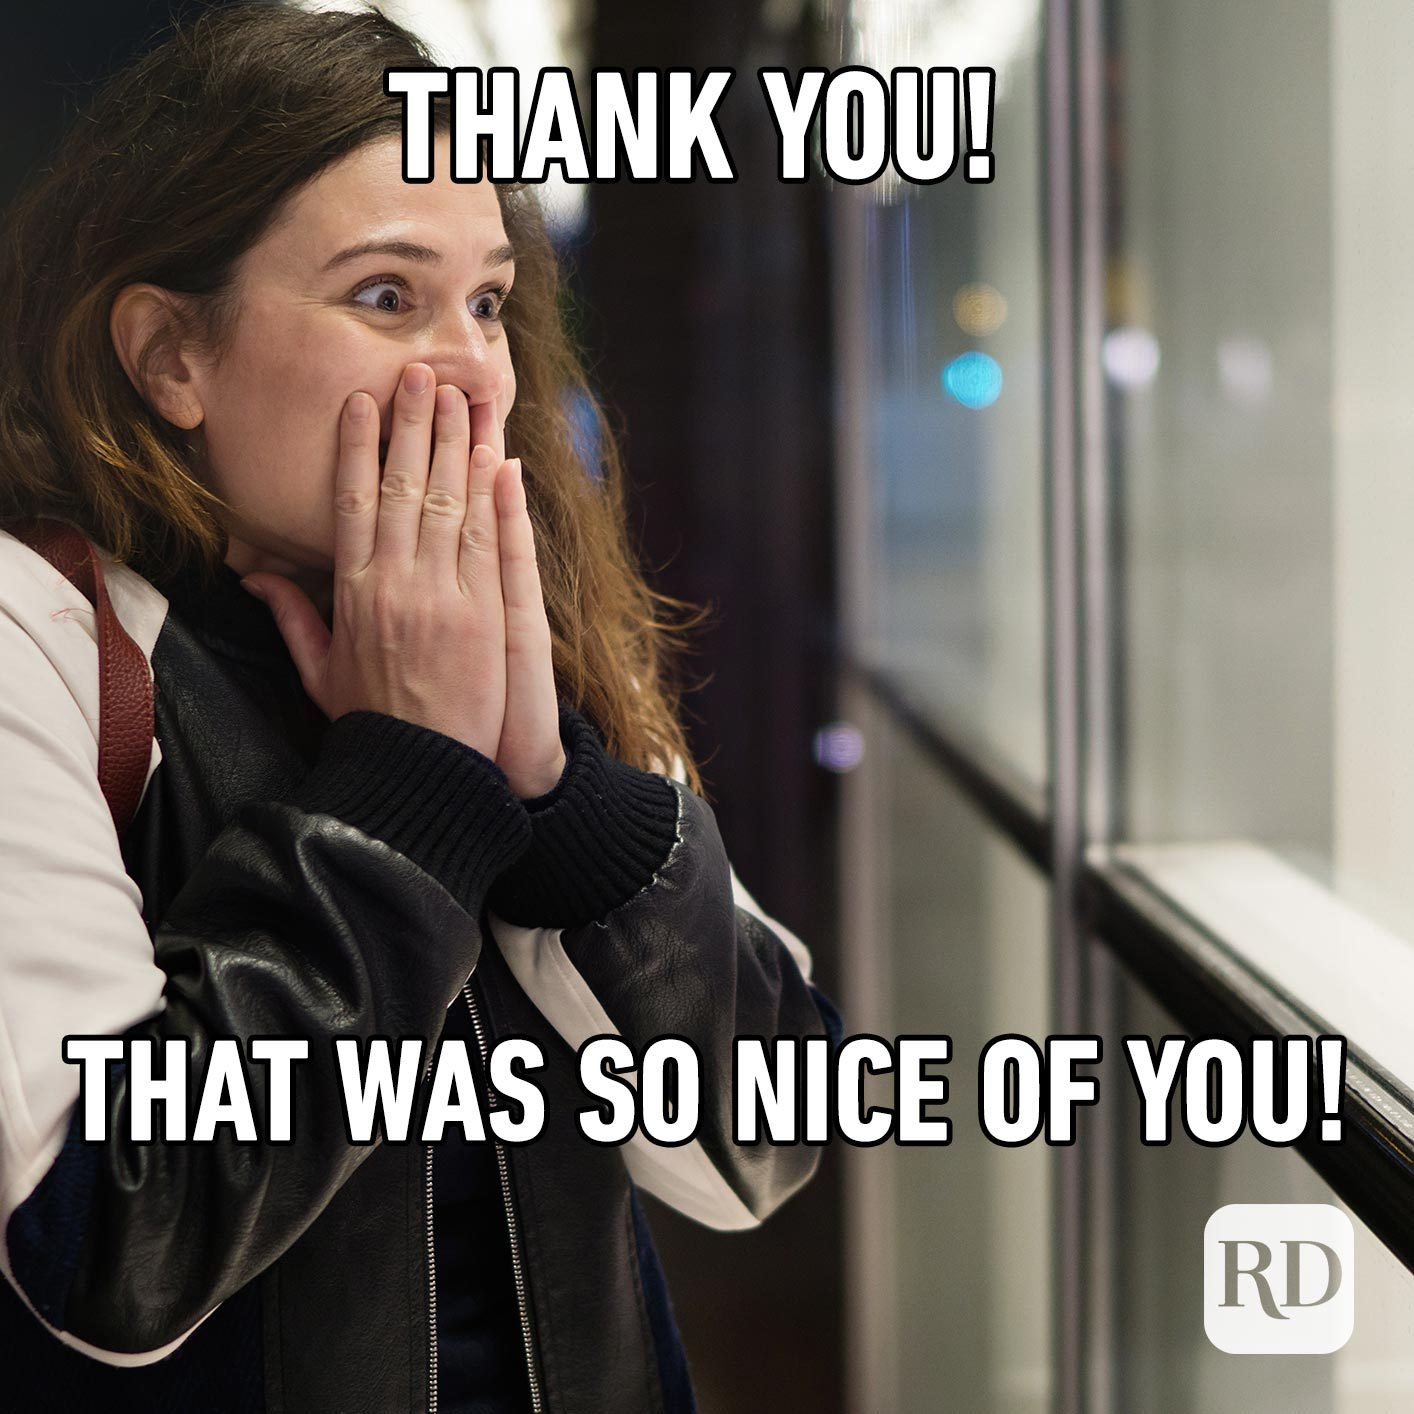 Woman gasping. Meme text: Thank you! That was so nice of you!